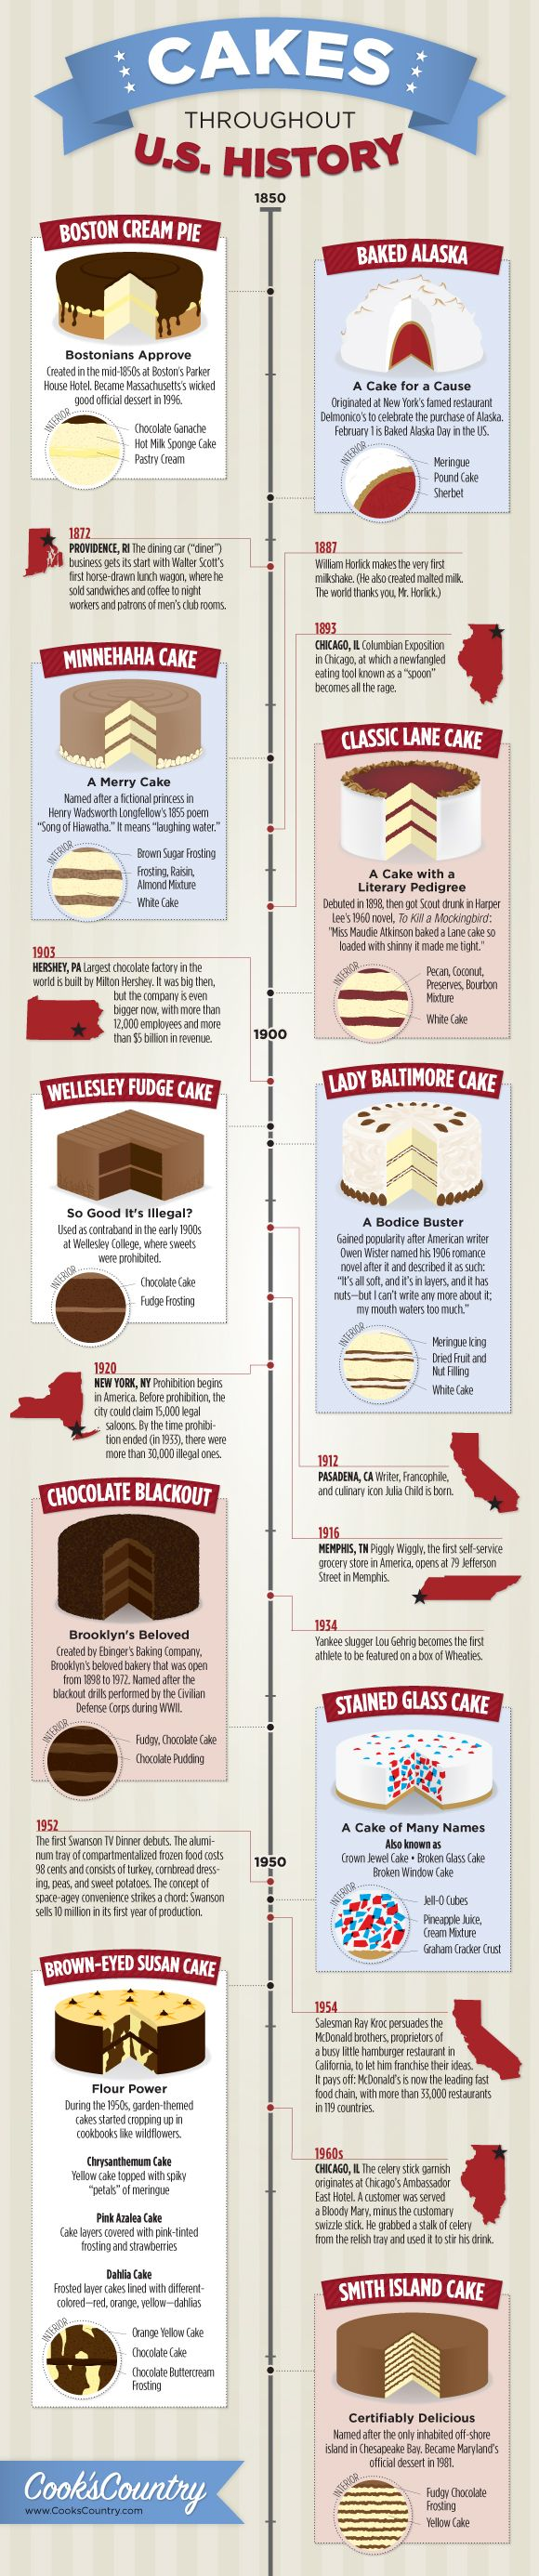 Cakes Throughout U.S. History Desserts, Cupcakes Infographic, History Infographic, Recipe, Food Facts, Us History, Food Infographic, Design Bags, Baking